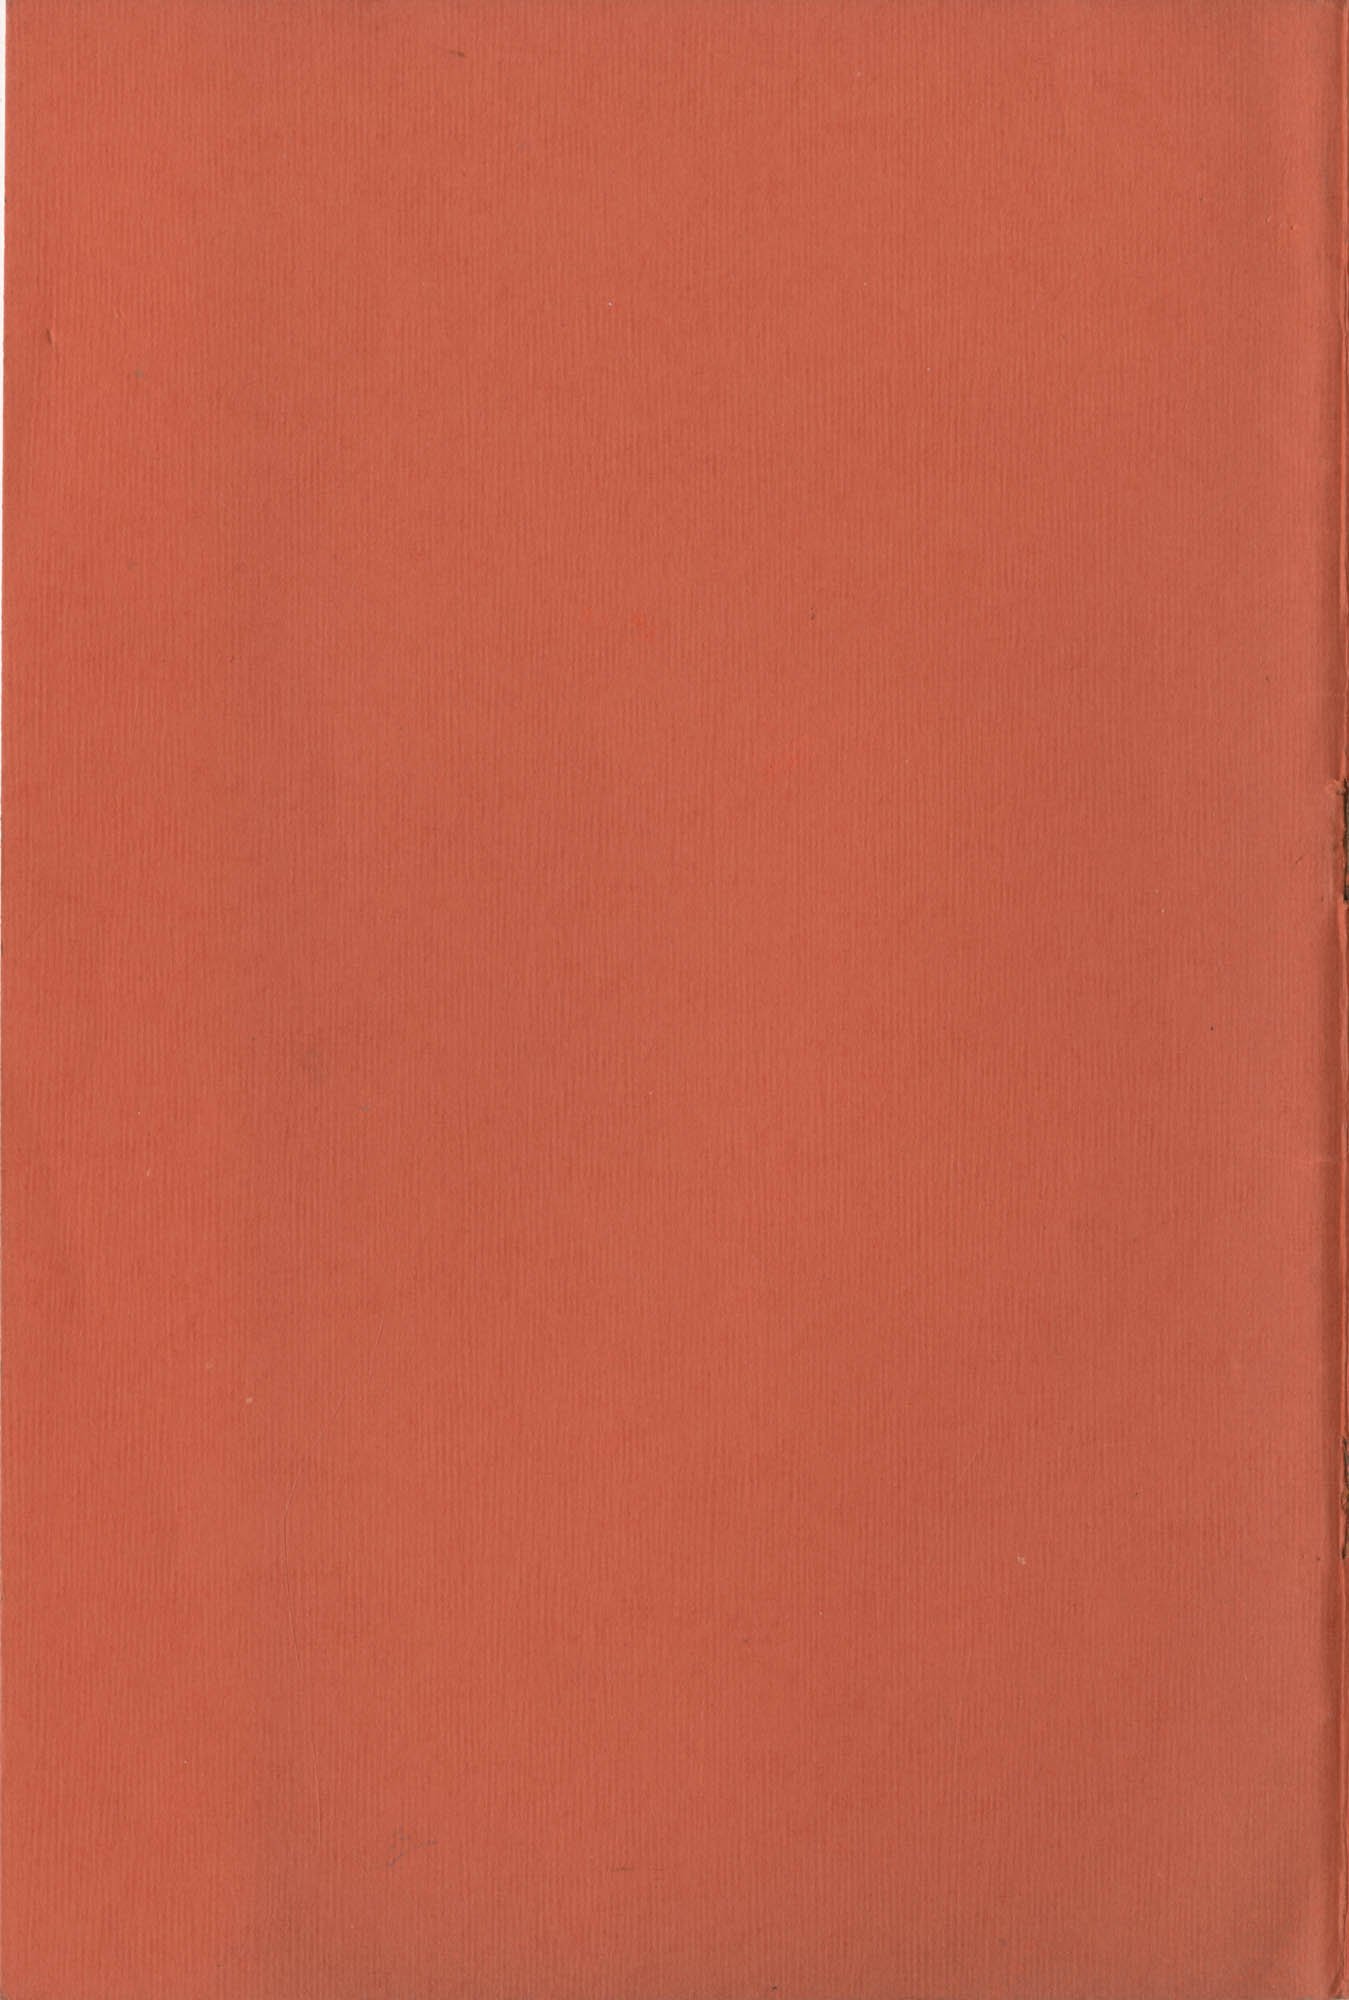 Southern Education Foundation, Annual Report 1971-1972, Back Cover Exterior